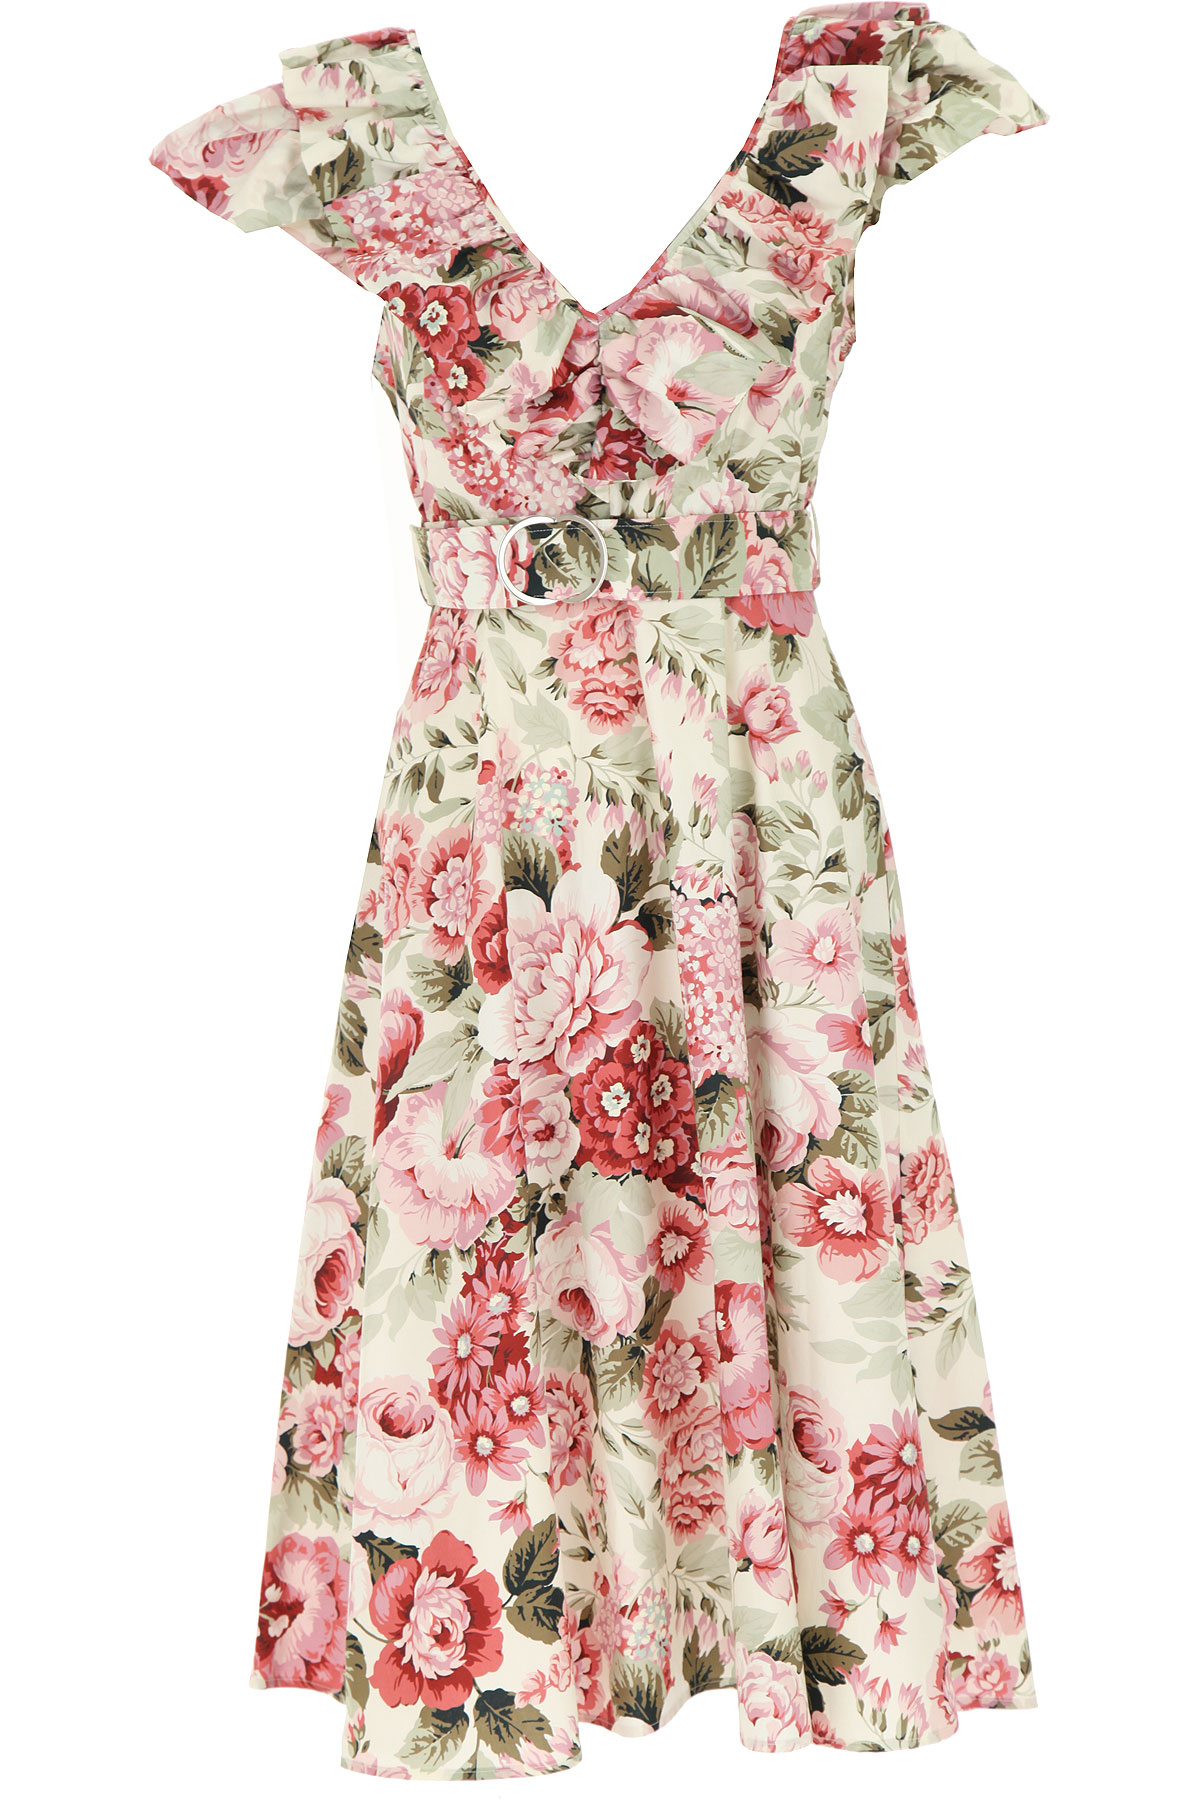 P.A.R.O.S.H. Dress for Women, Evening Cocktail Party On Sale, Pink, Cotton, 2019, 6 8